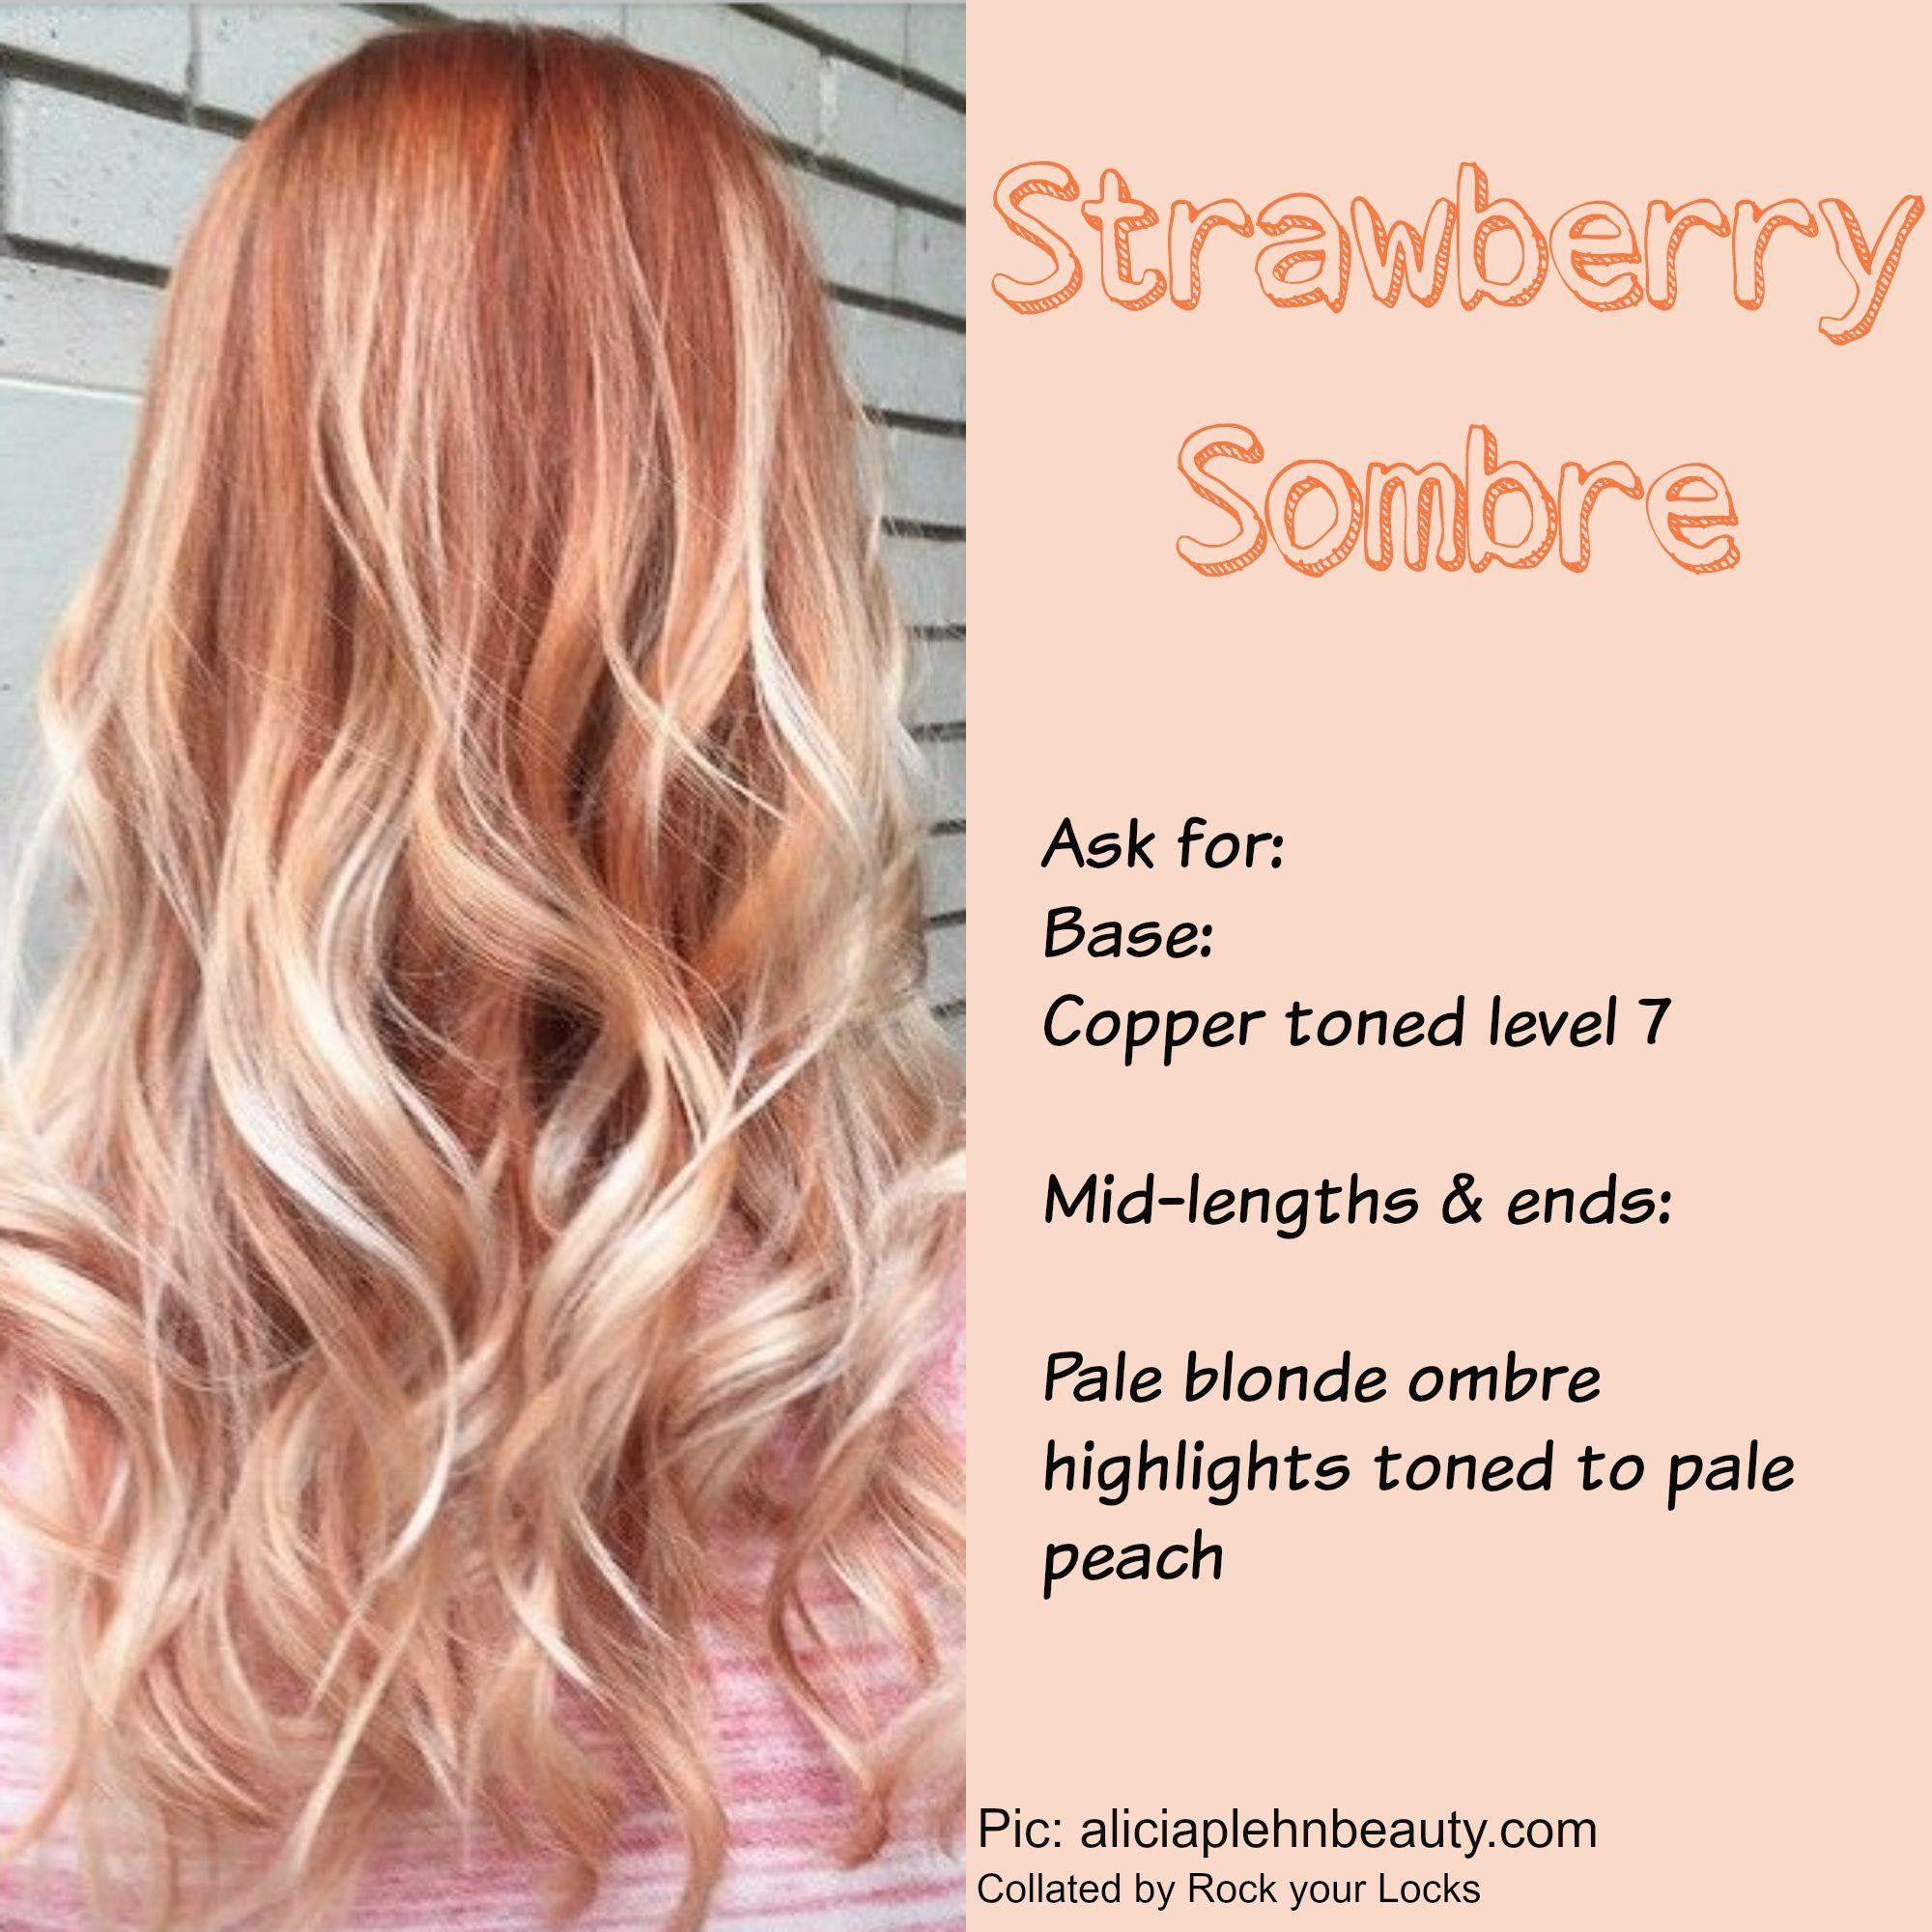 Strawberry Sombre Blonde Hair With Bangs Ombre Hair Blonde